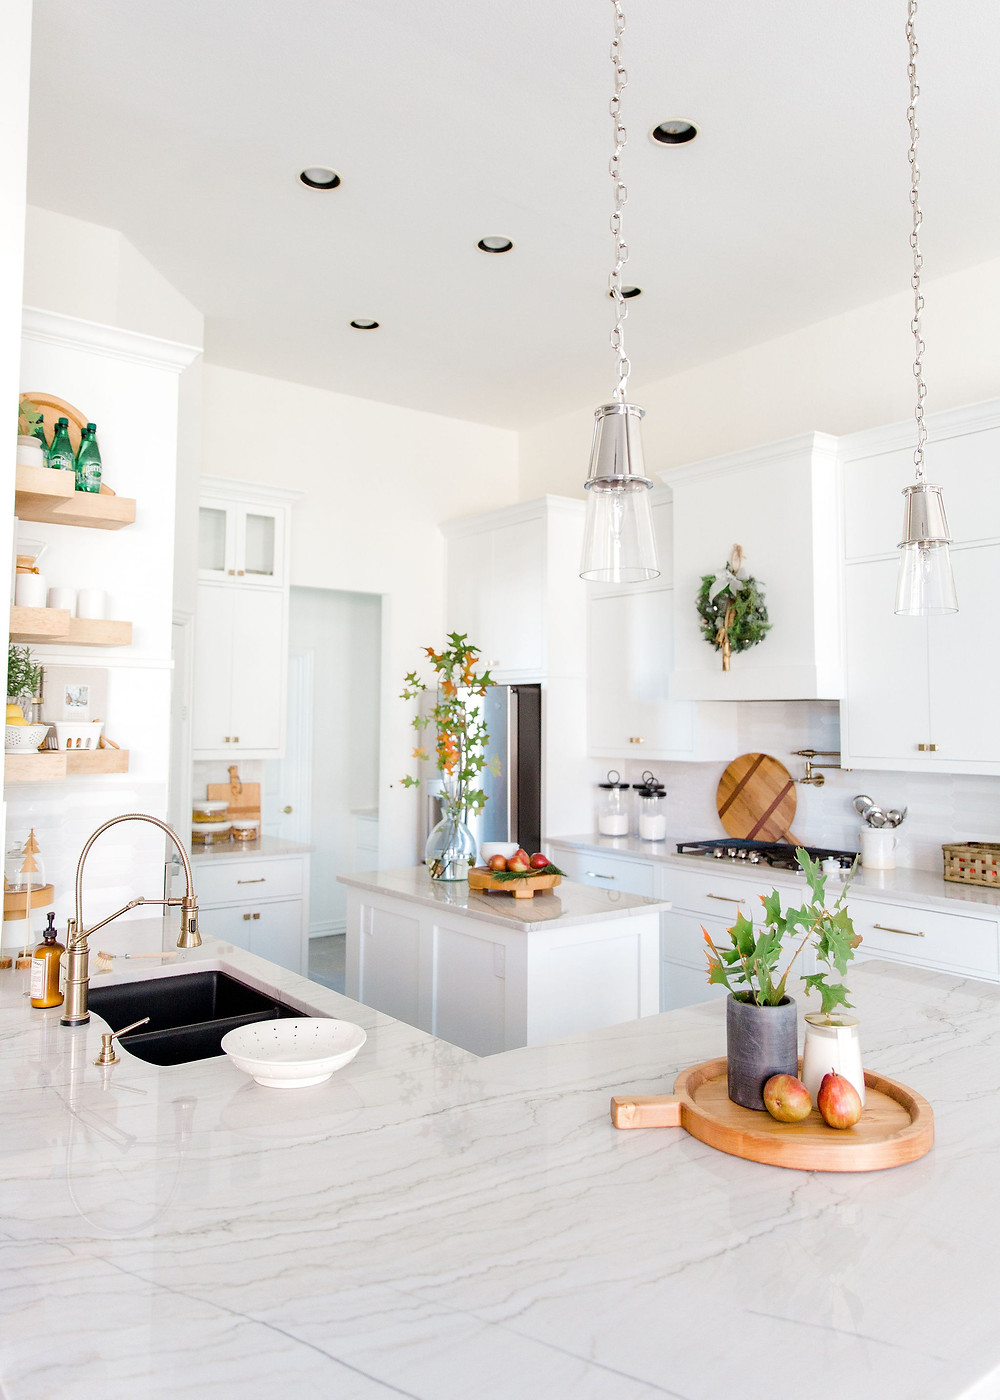 Kitchen design by Laura Design & Co, Dallas interior designer